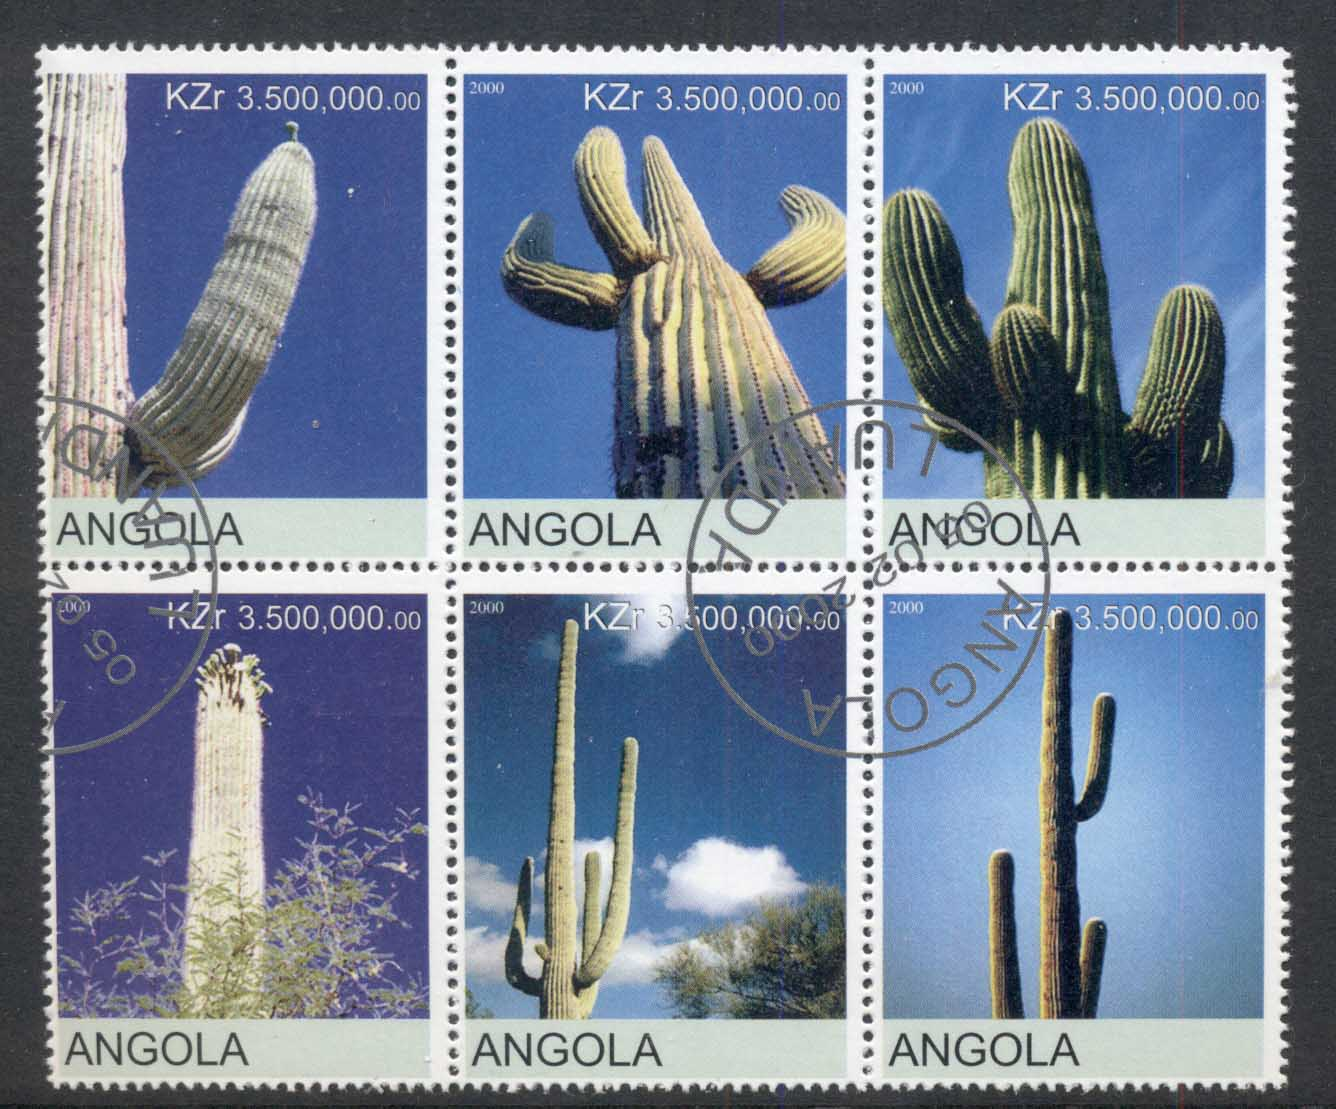 Angola 2000 Cacti blk6 (rebel Issue) CTO